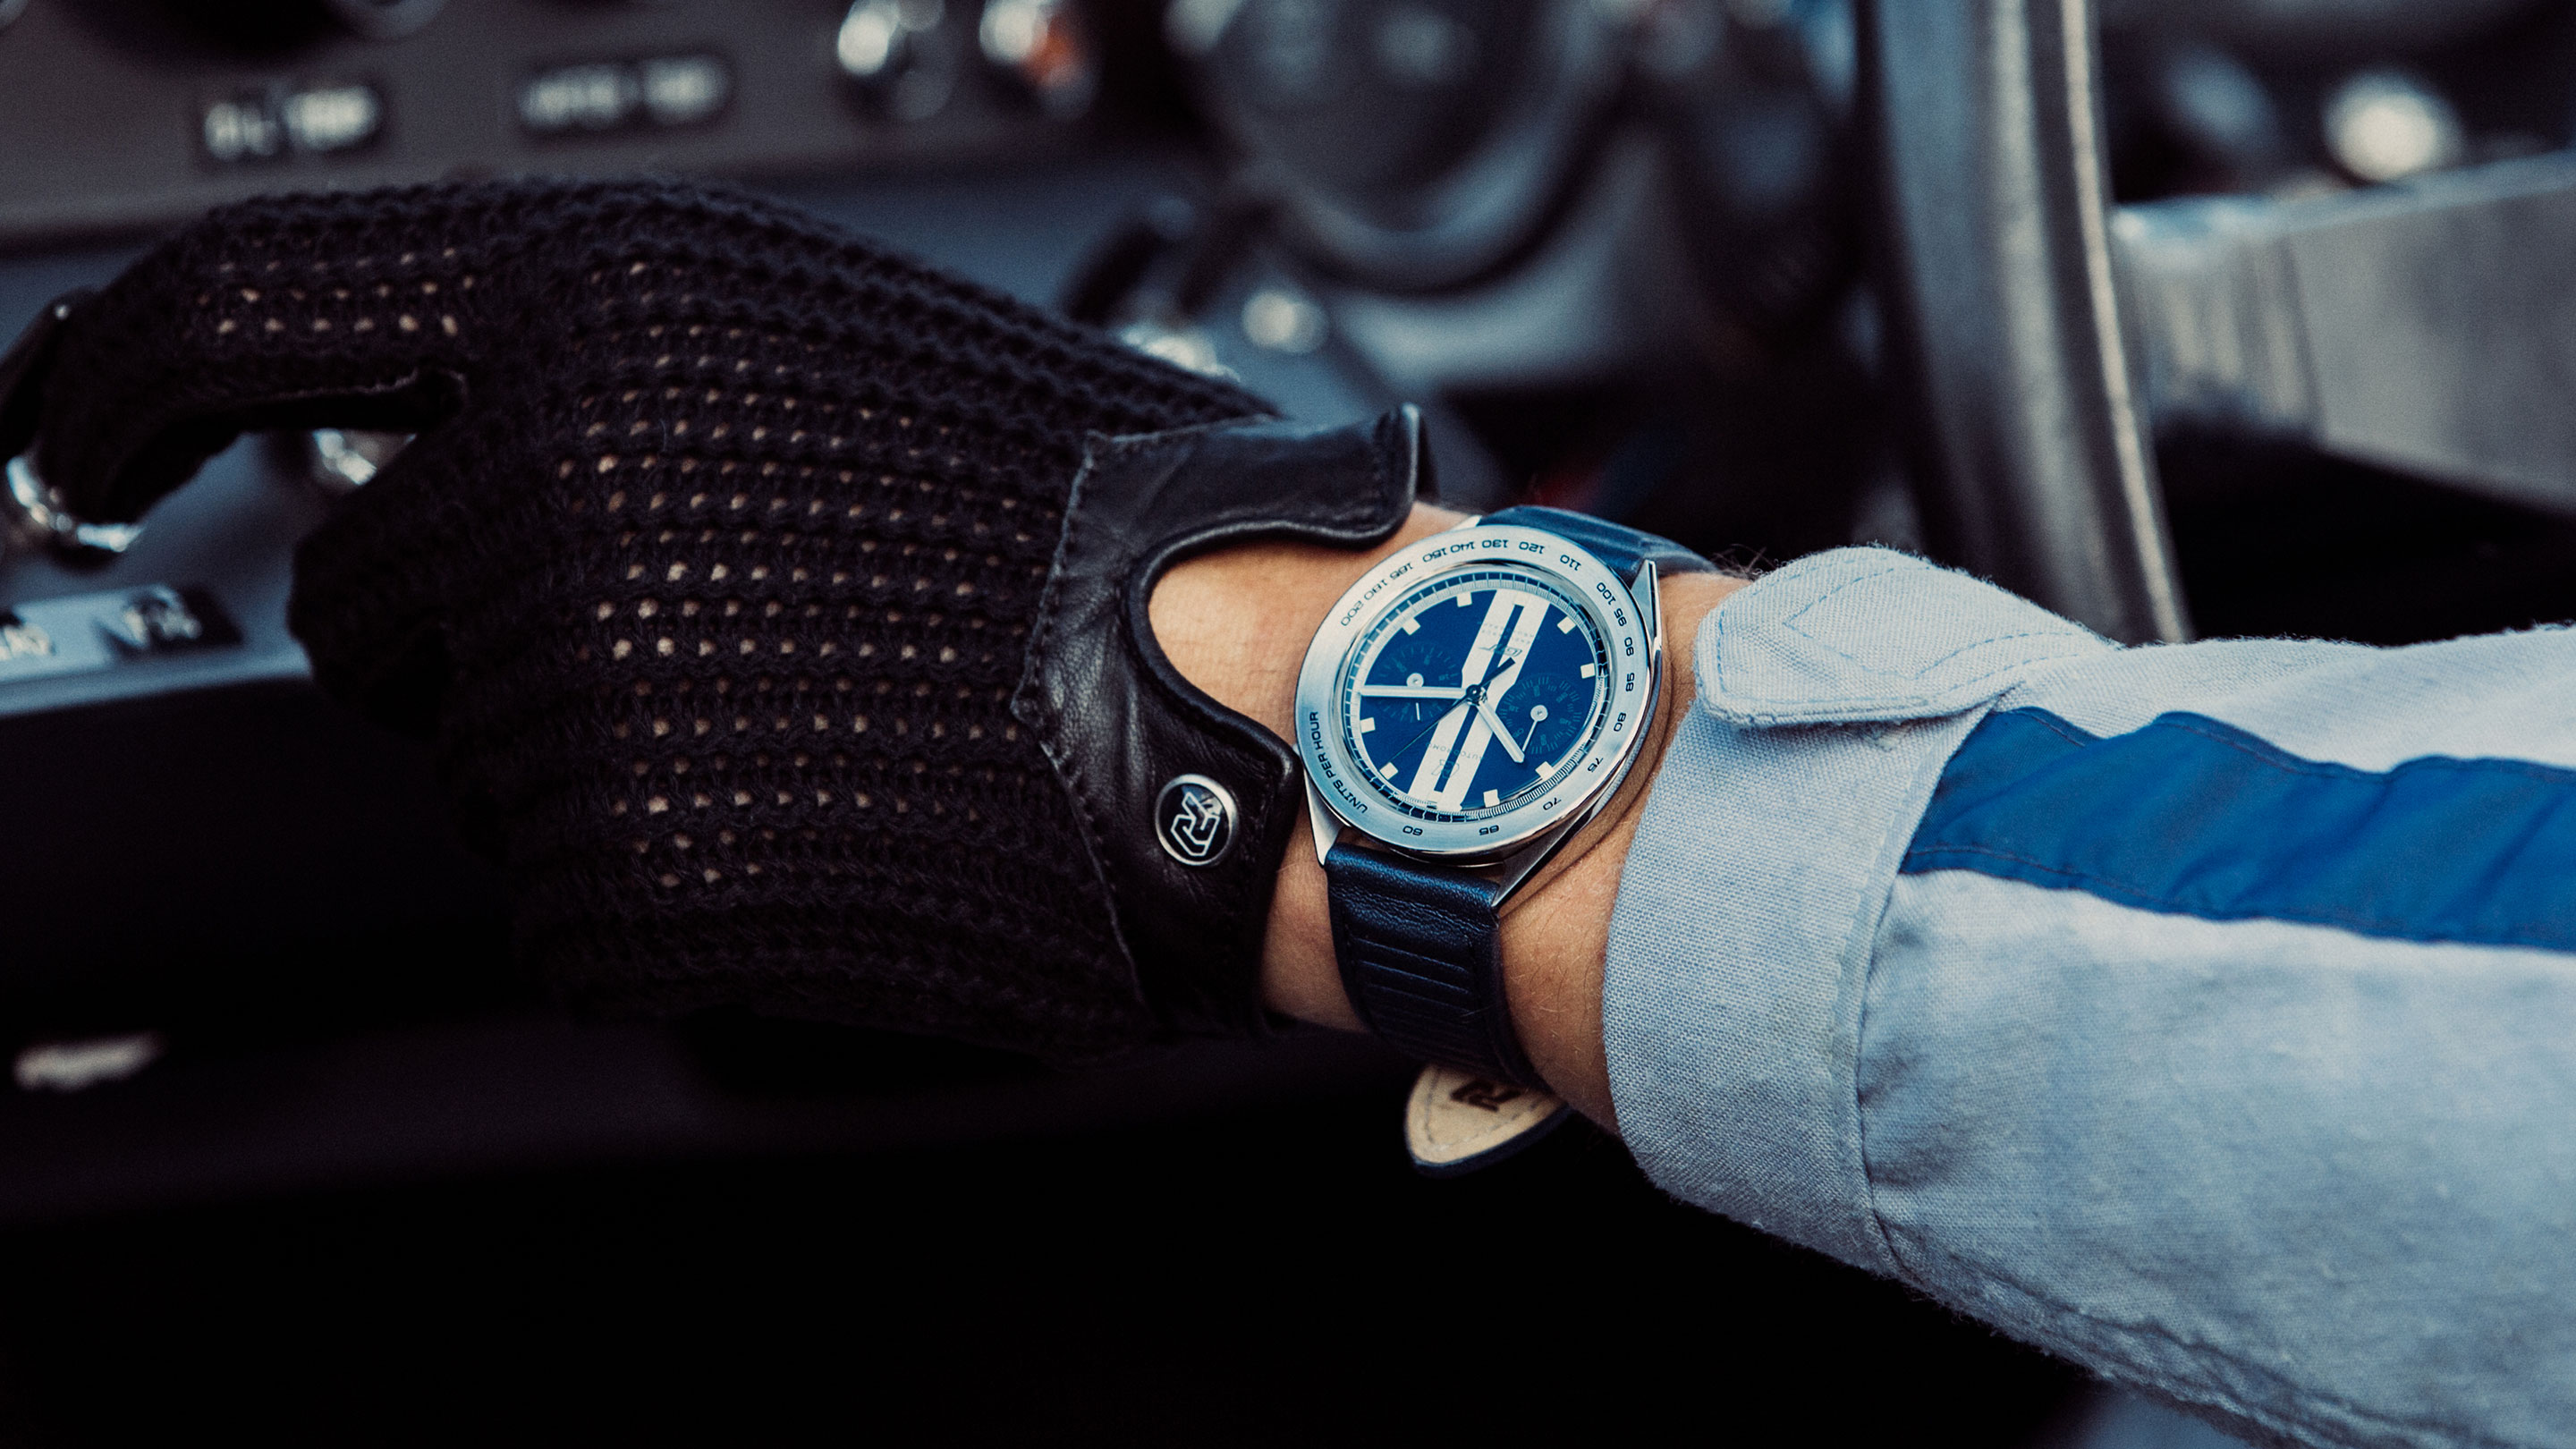 Introducing The Autodromo Ford Gt Endurance Chronograph And A Very Special Gt Owners Watch Too Hodinkee